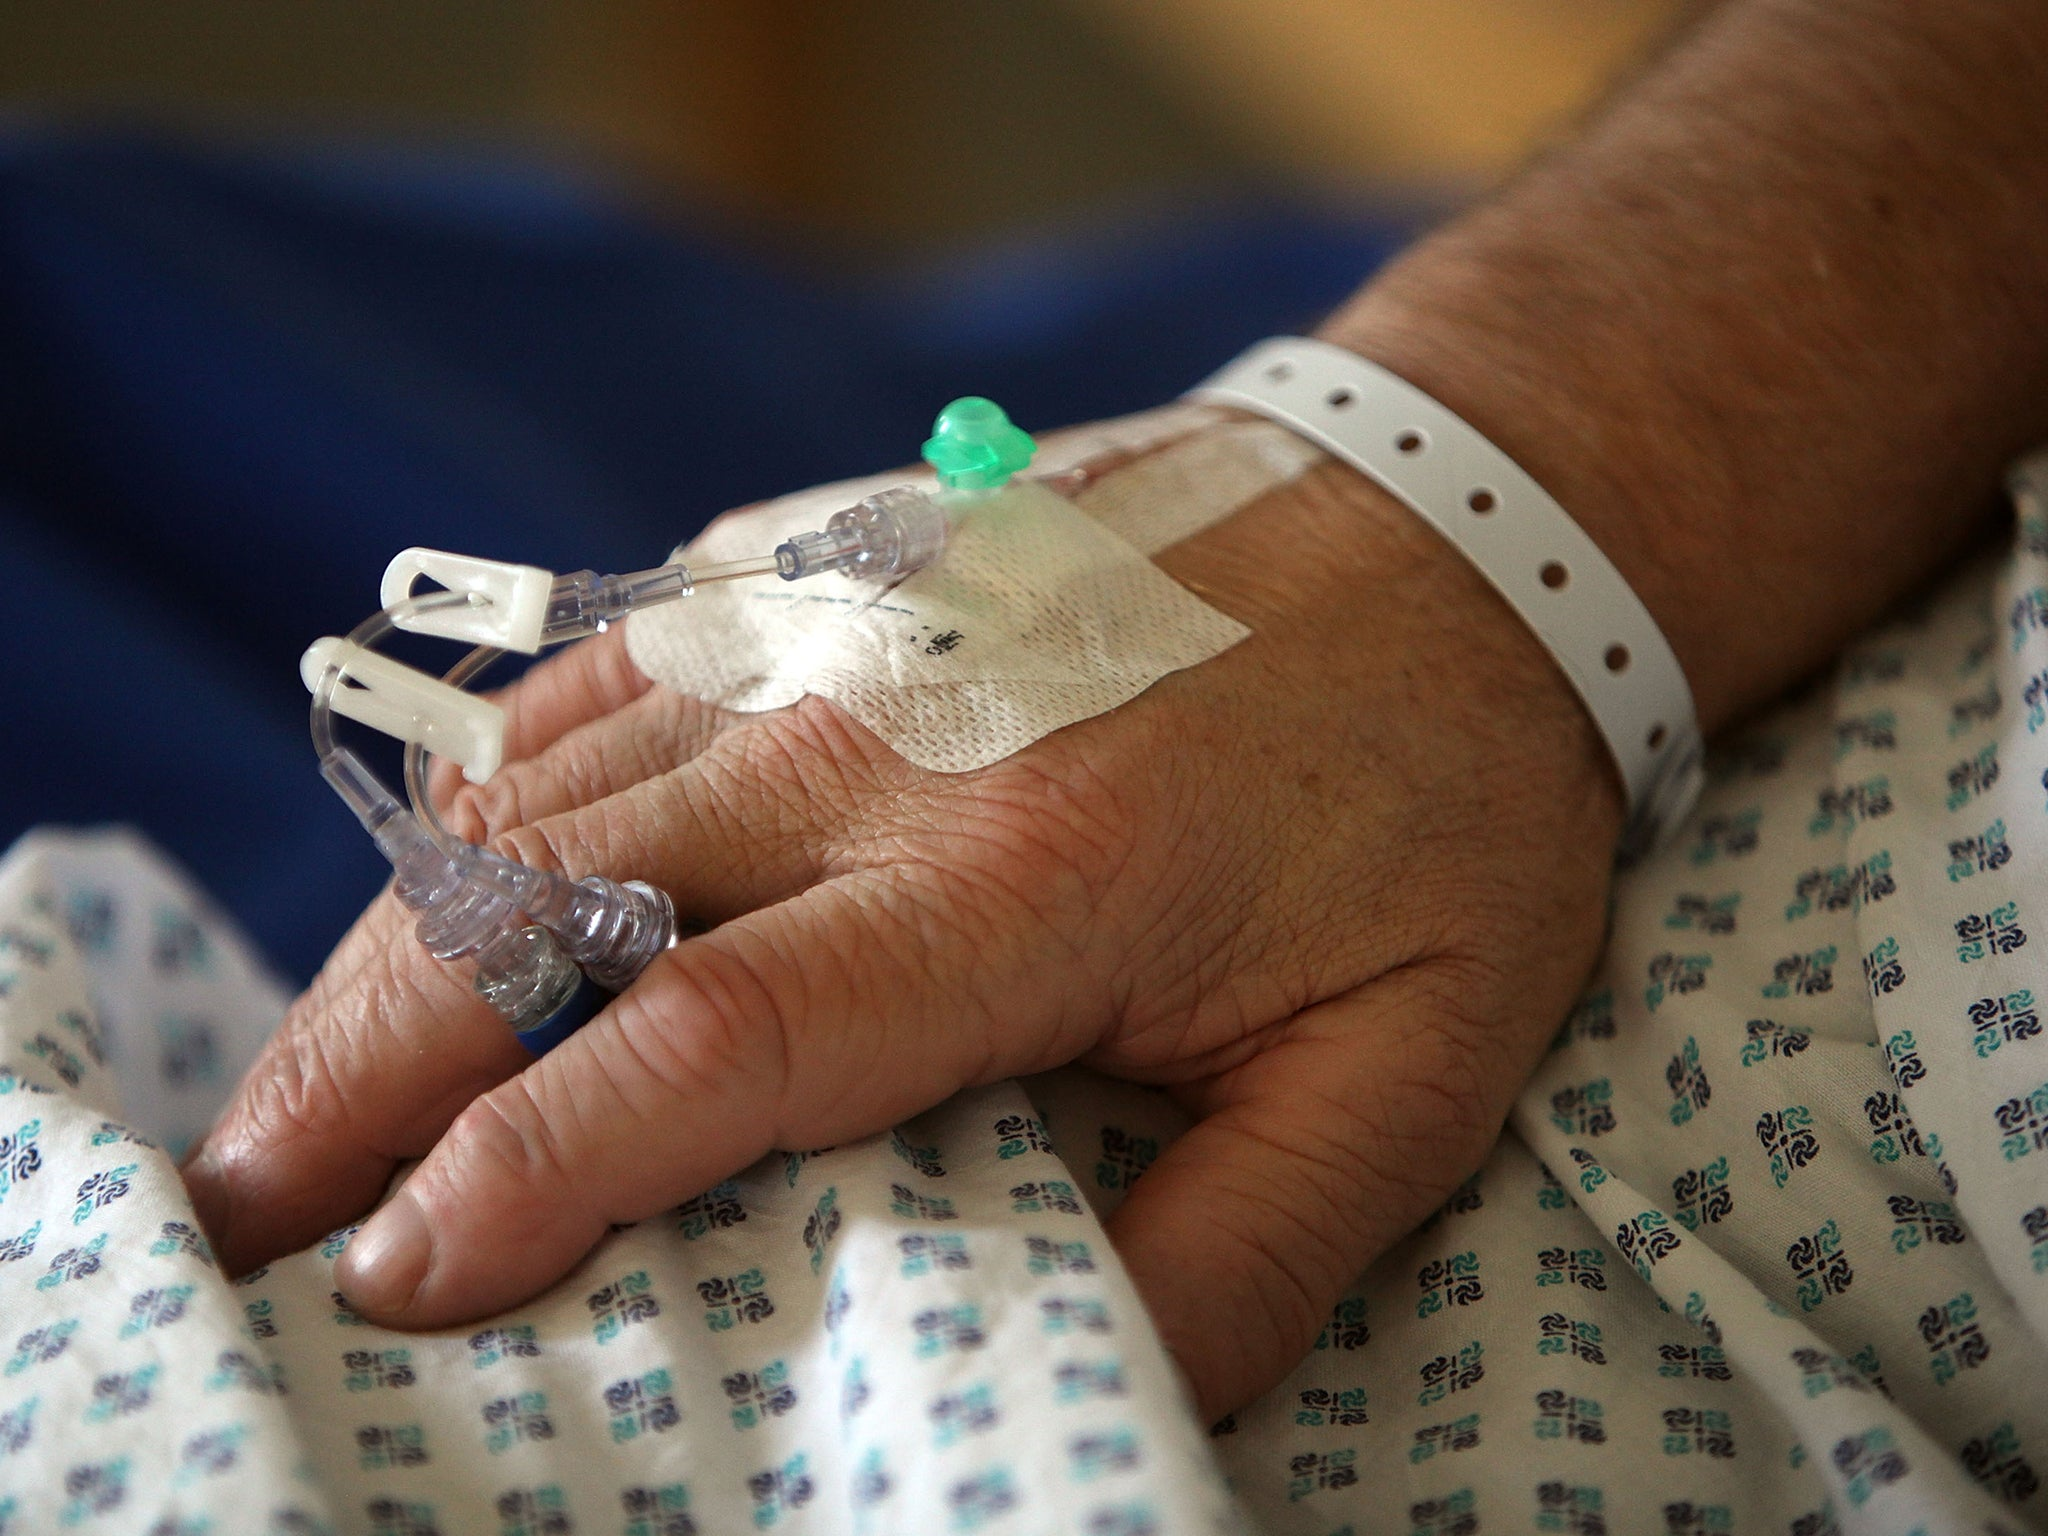 NHS patients 'ignored and sidelined', says report